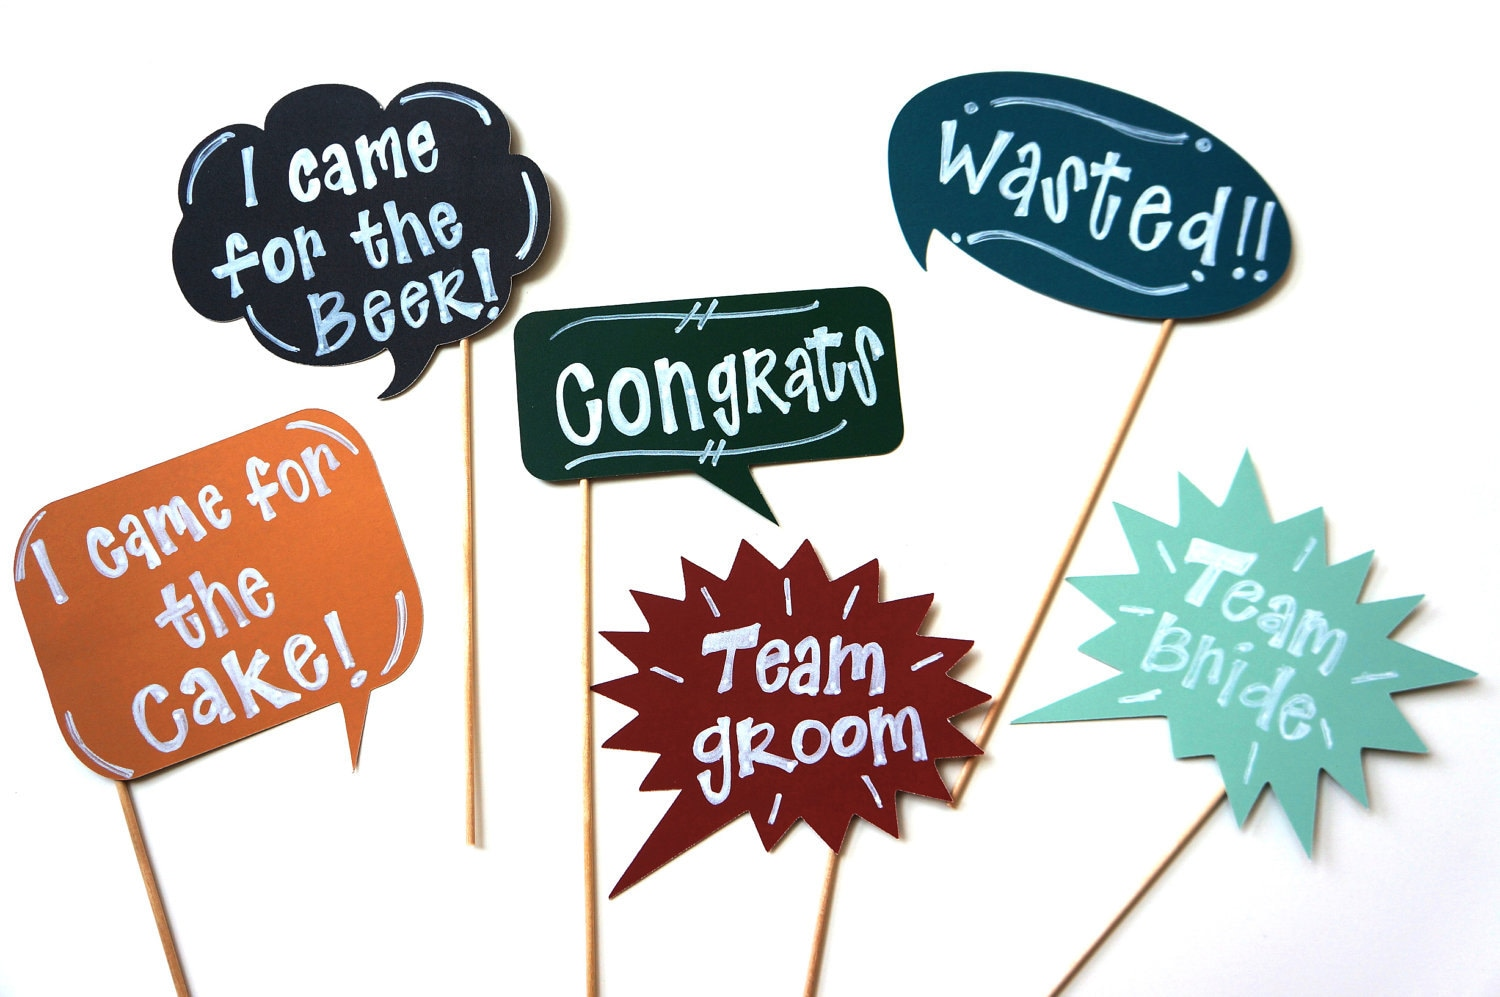 Chalkboard Photo Booth Props on a stick - Set of 6 Chalk Board Photobooth Props - Fun for Parties, Weddings - Includes Chalk